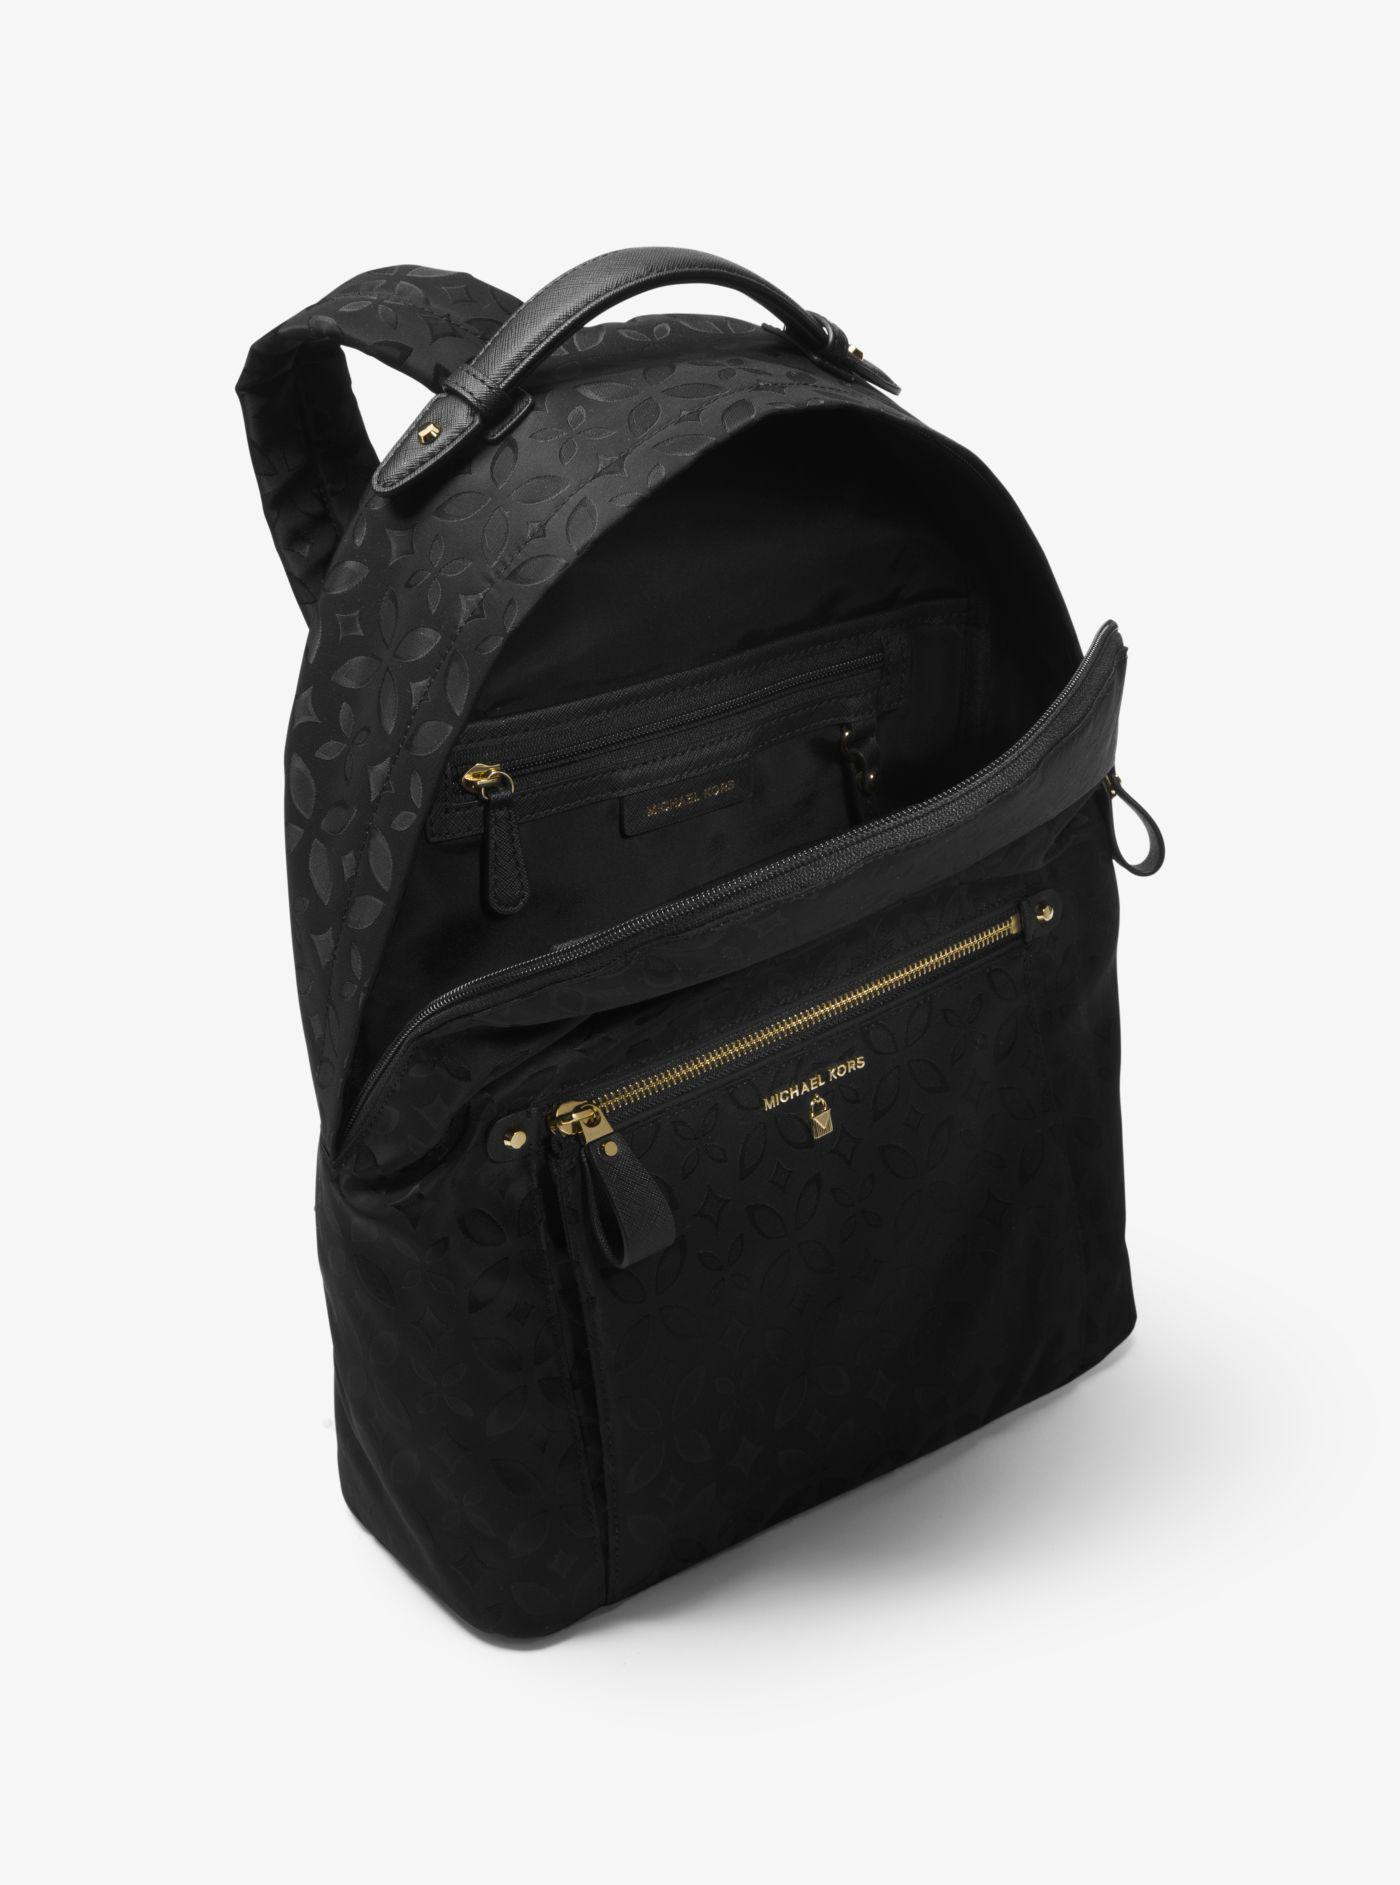 fee8e903e3c7e Lyst - Michael Kors Michael Nylon Kelsey Signature Backpack in Black